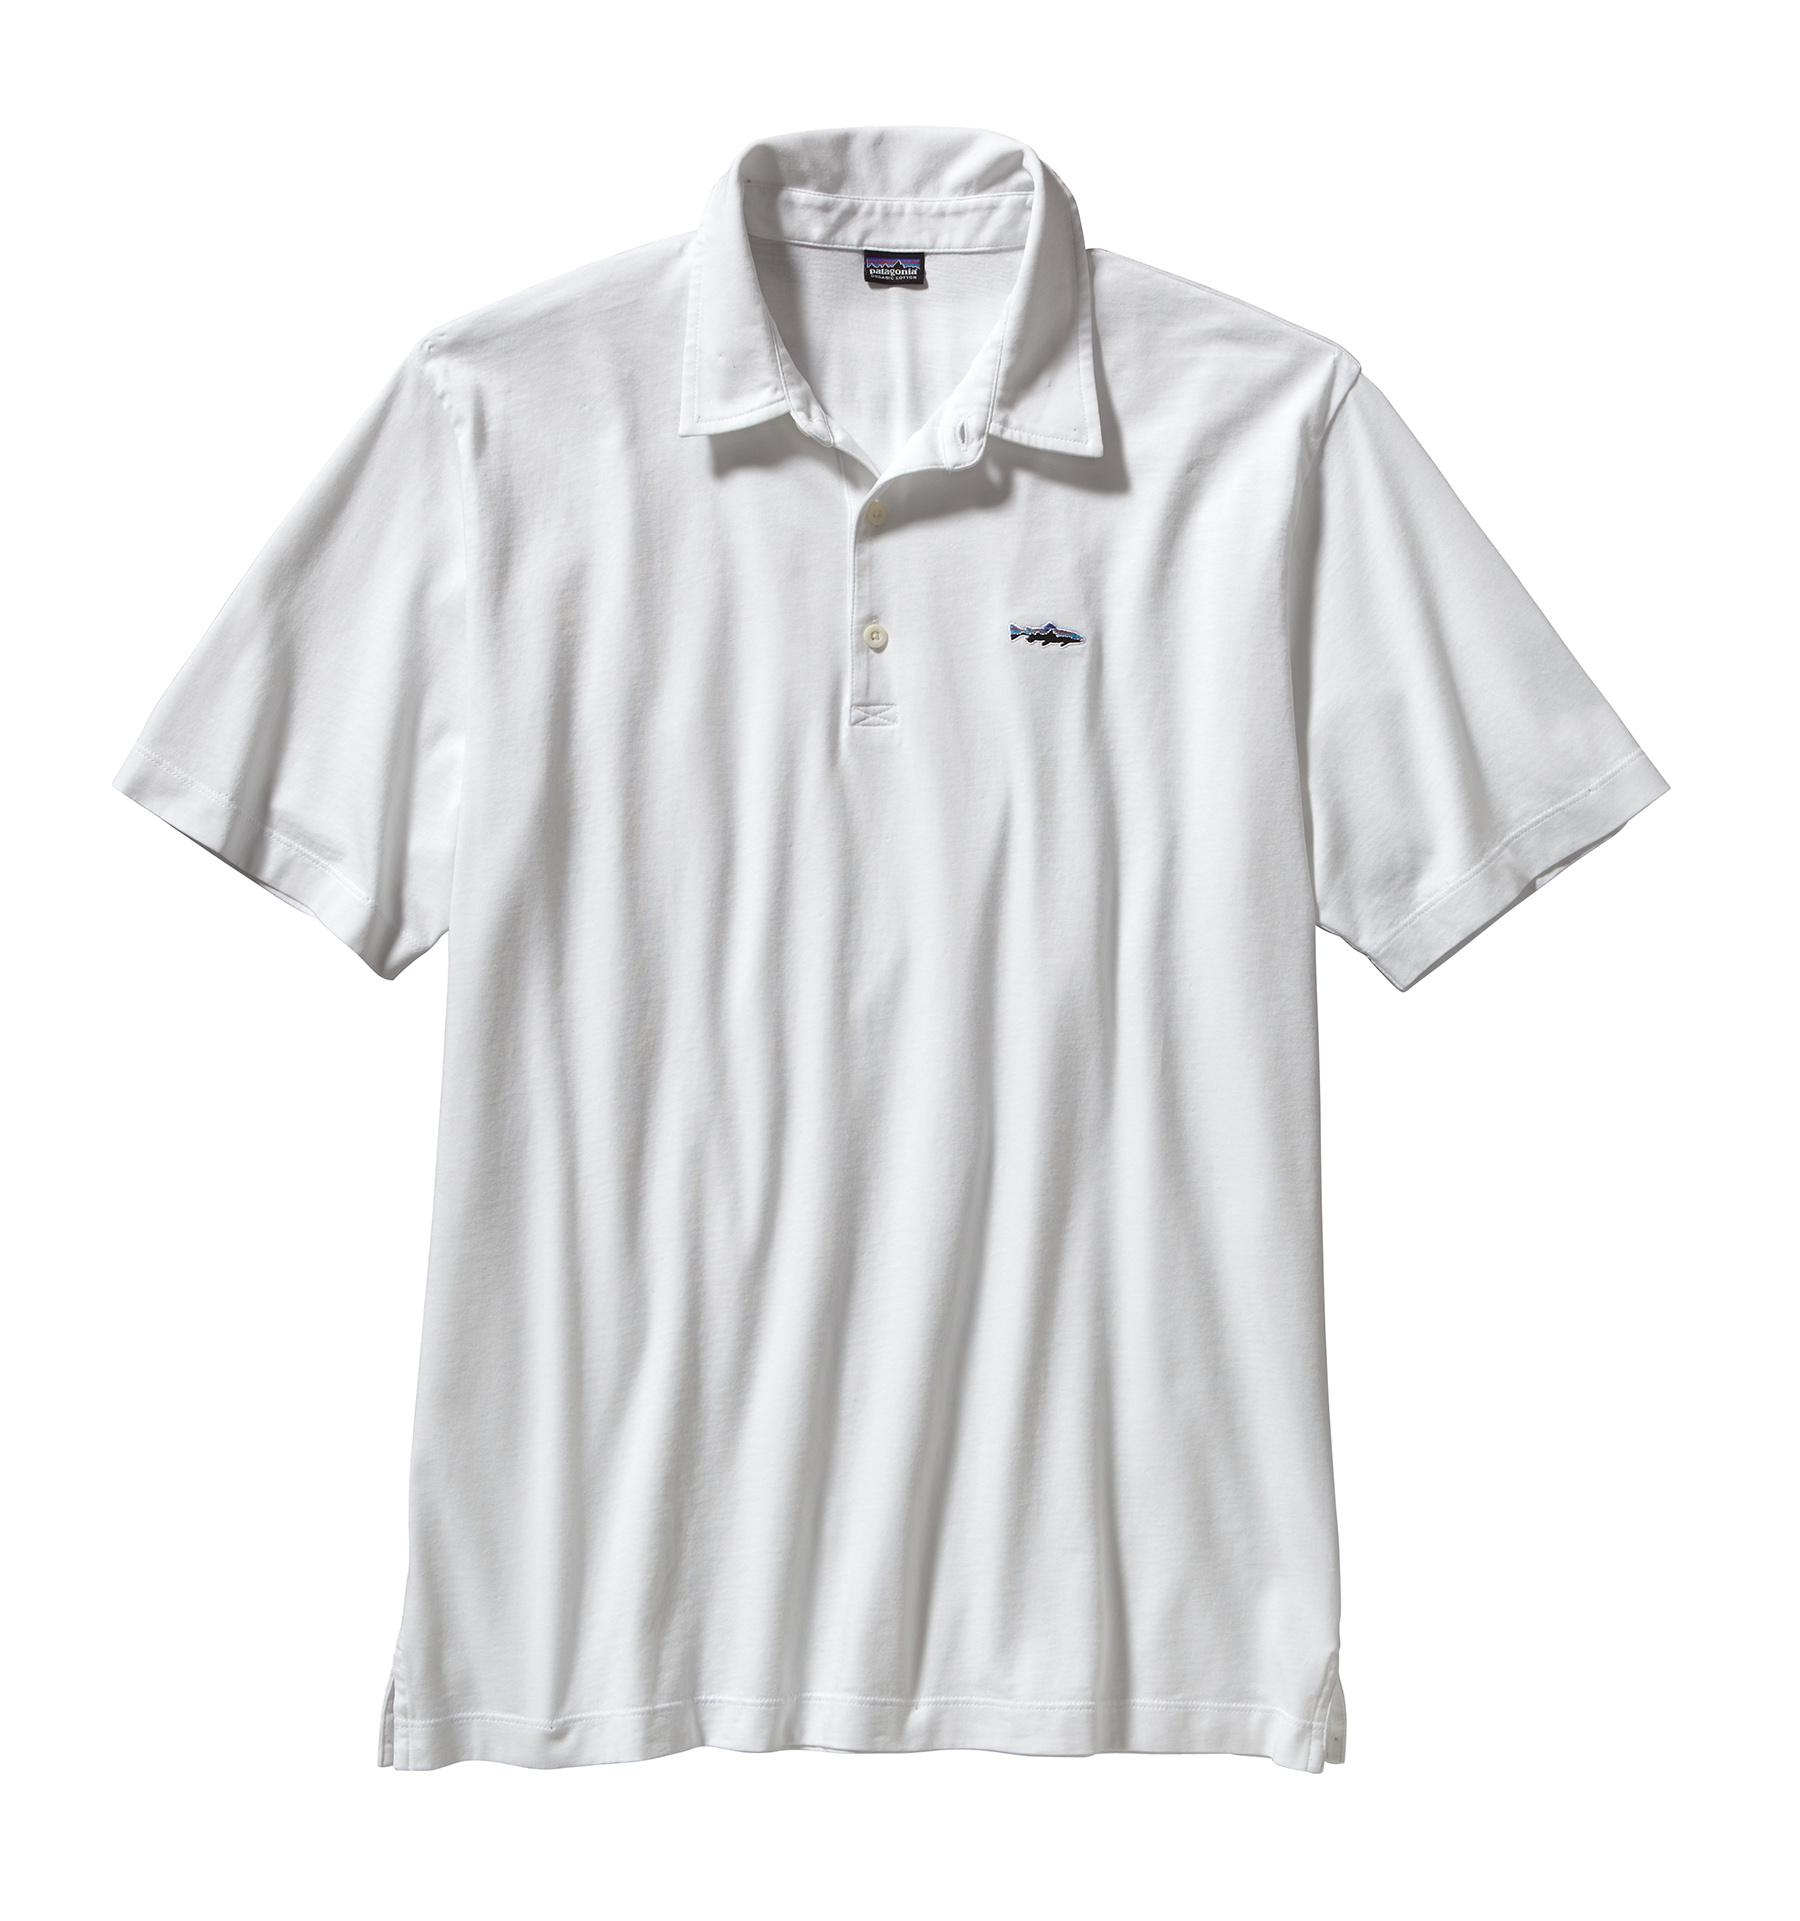 Patagonia Men's Polo Trout Fitz Roy Shirt WHI_WHITE